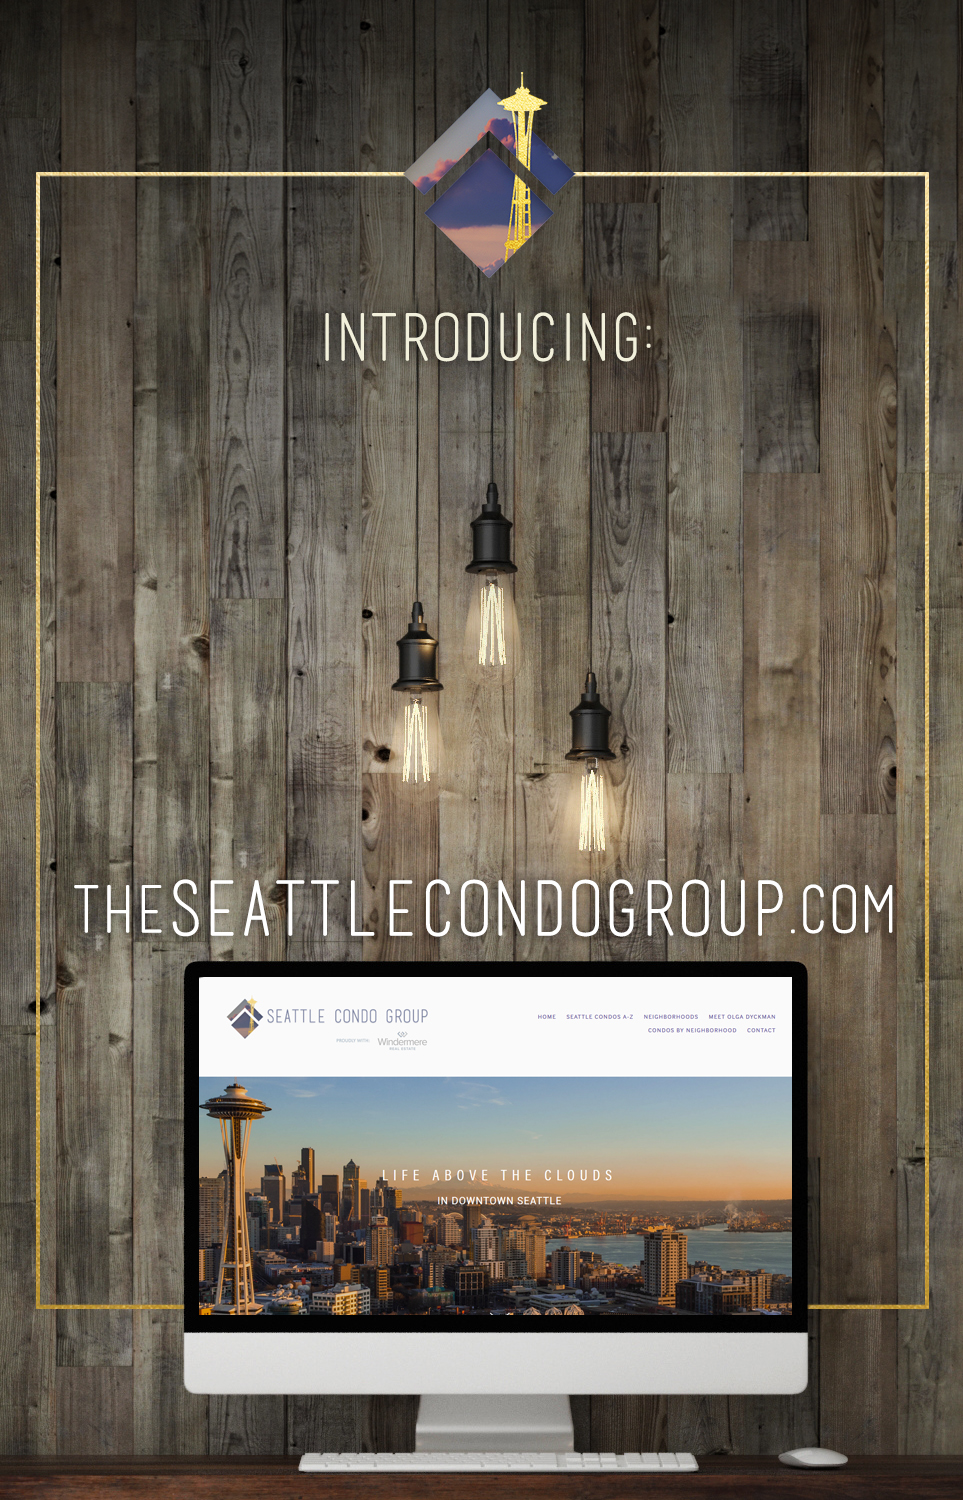 The new website for The Seattle Condo Group